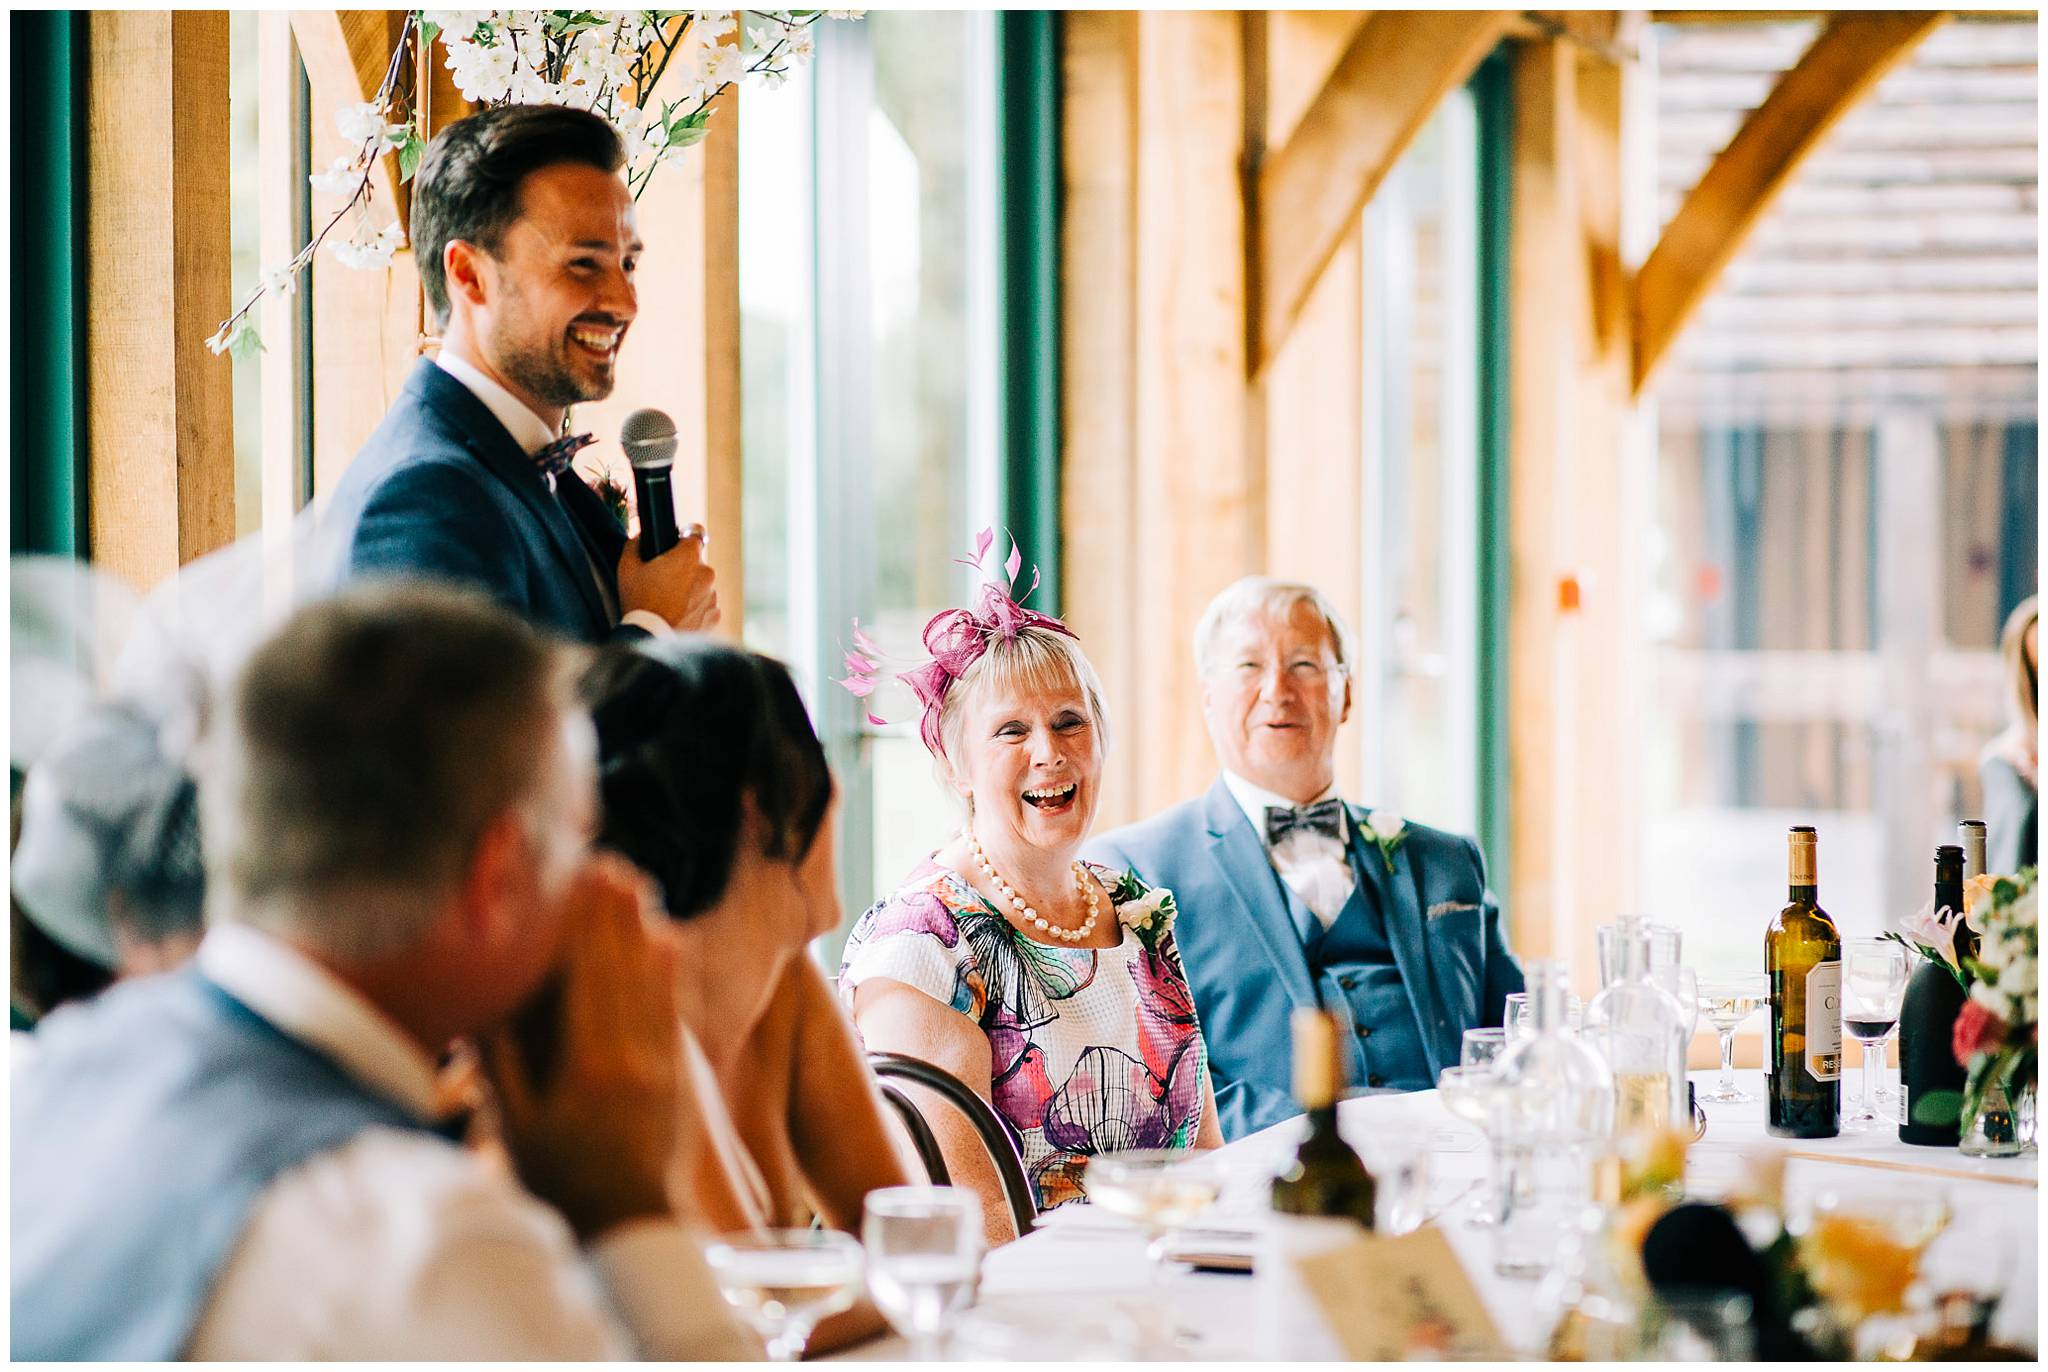 Chic Summer Wedding at Hazel Gap Barn - Nottinghamshire Photographer63.jpg